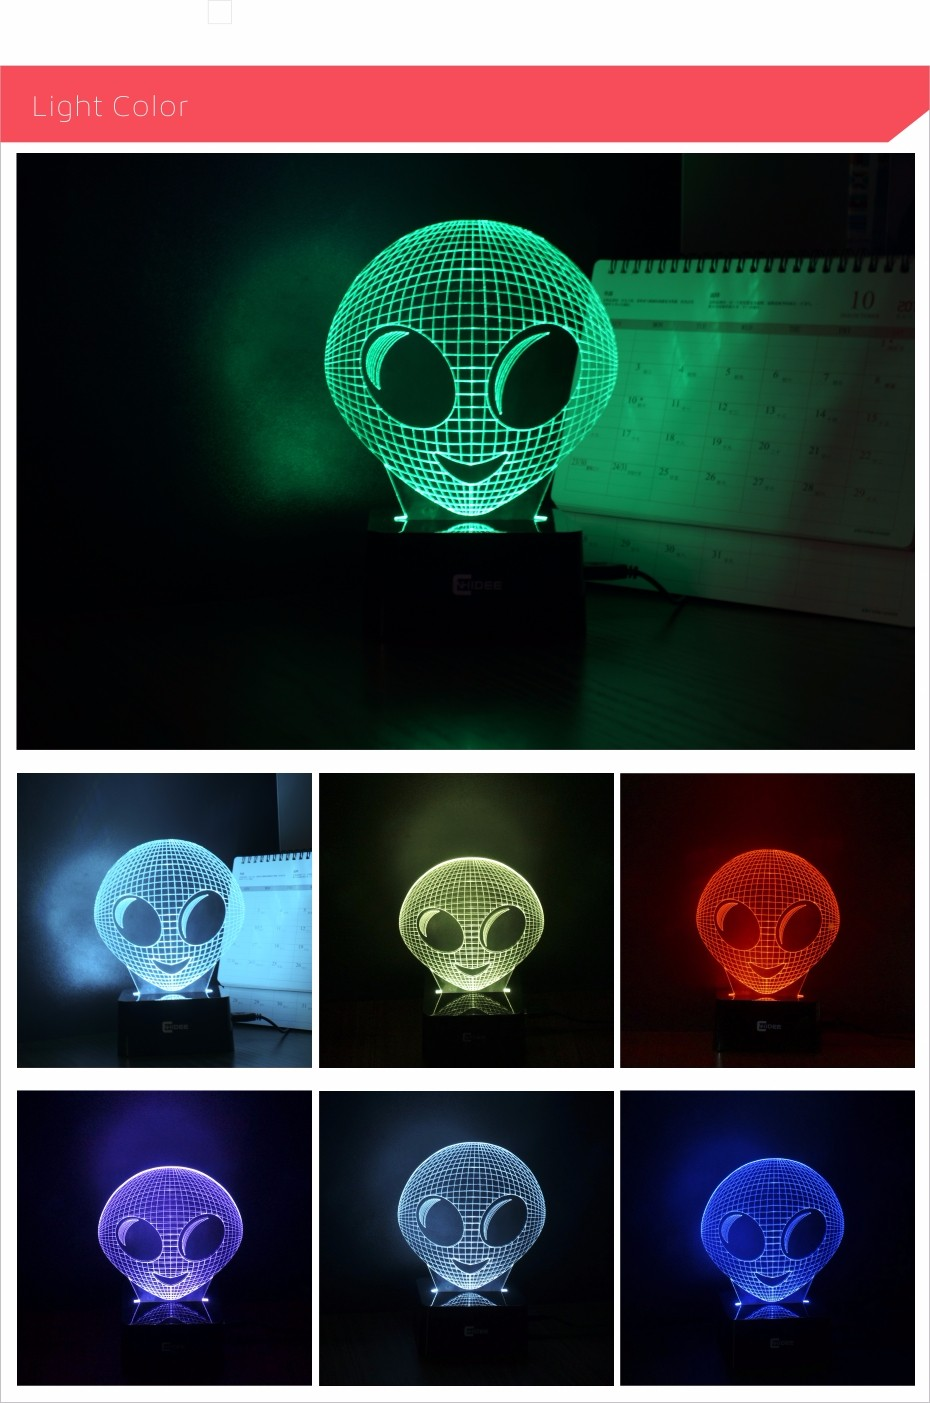 CNHIDEE Alien 7 Colors RGB Lamp 3D Night Light Children Bedroom Sleeping Led Table Lamps USB Besides Lampara as Home Decor (3)